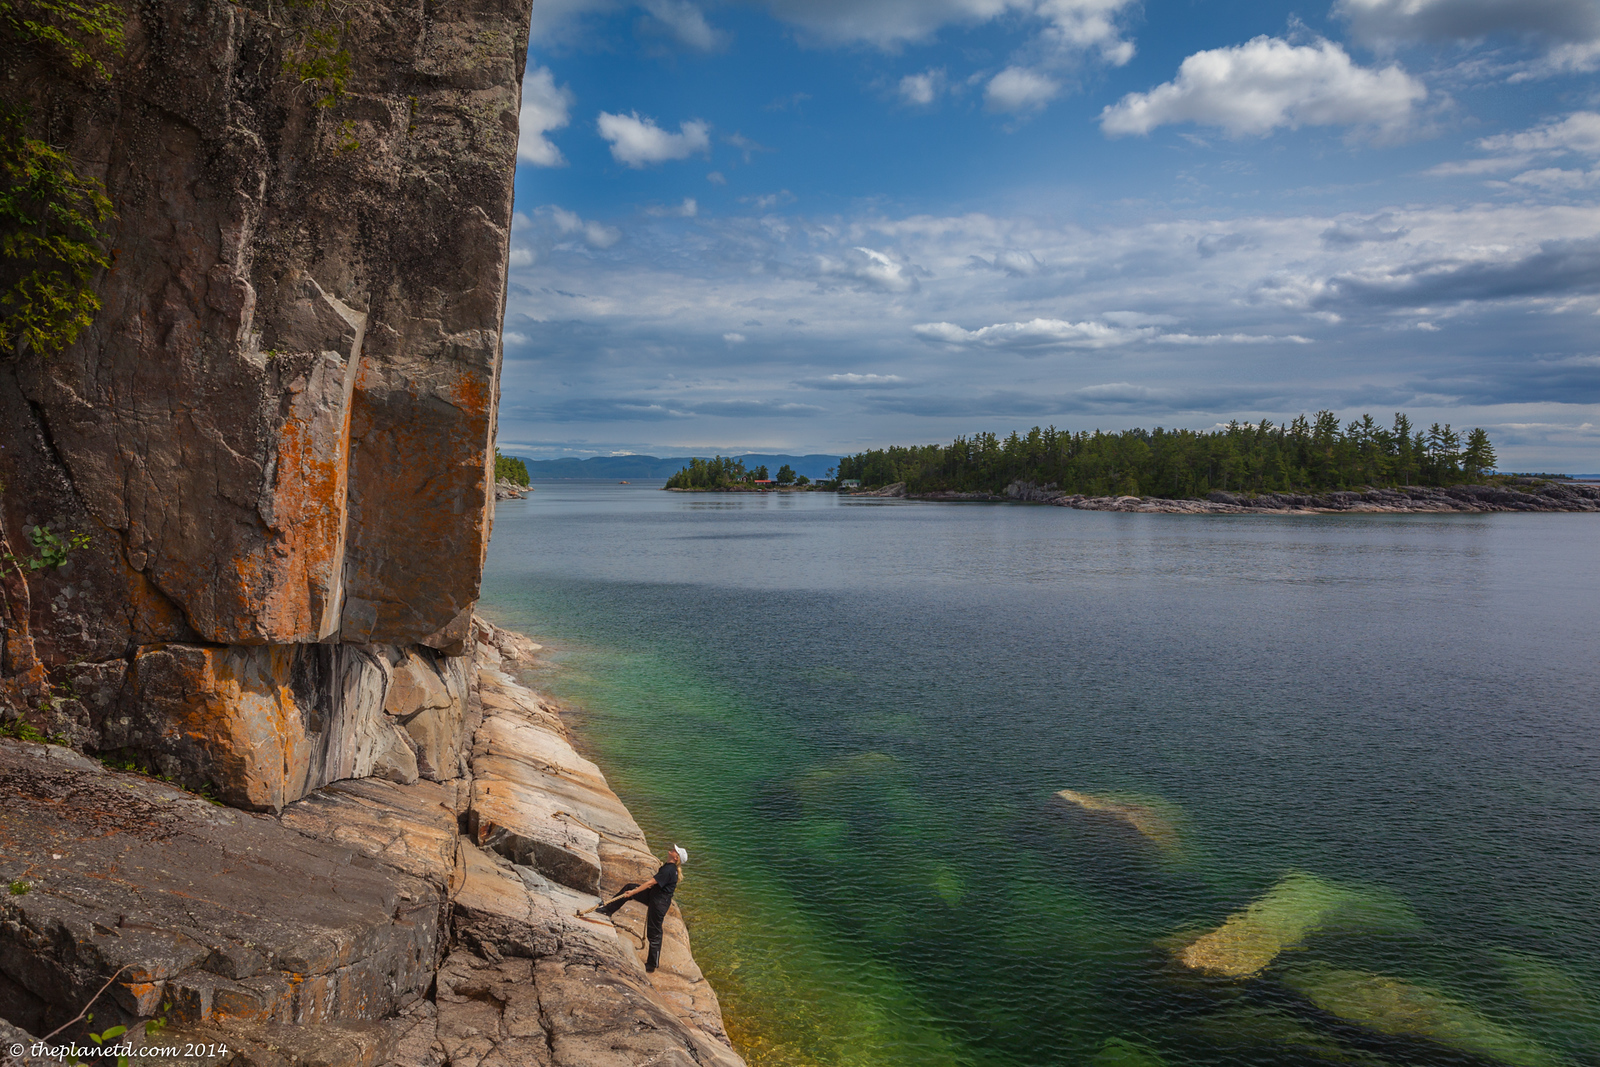 Taking in the Petroglyphs of Lake Superior Provincial Park